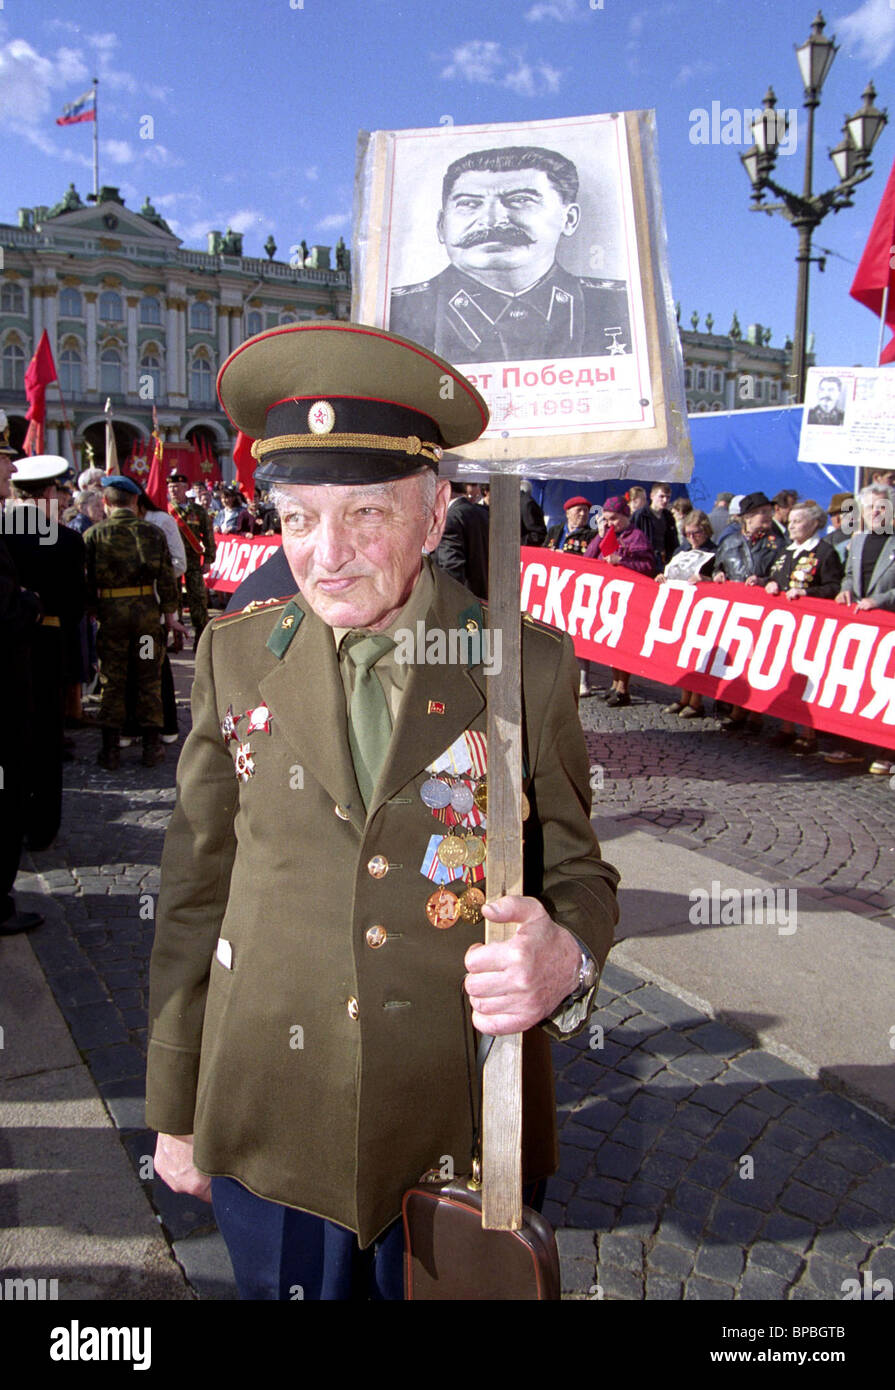 Participant in rally of Russian Communist Workers' Party - Stock Image